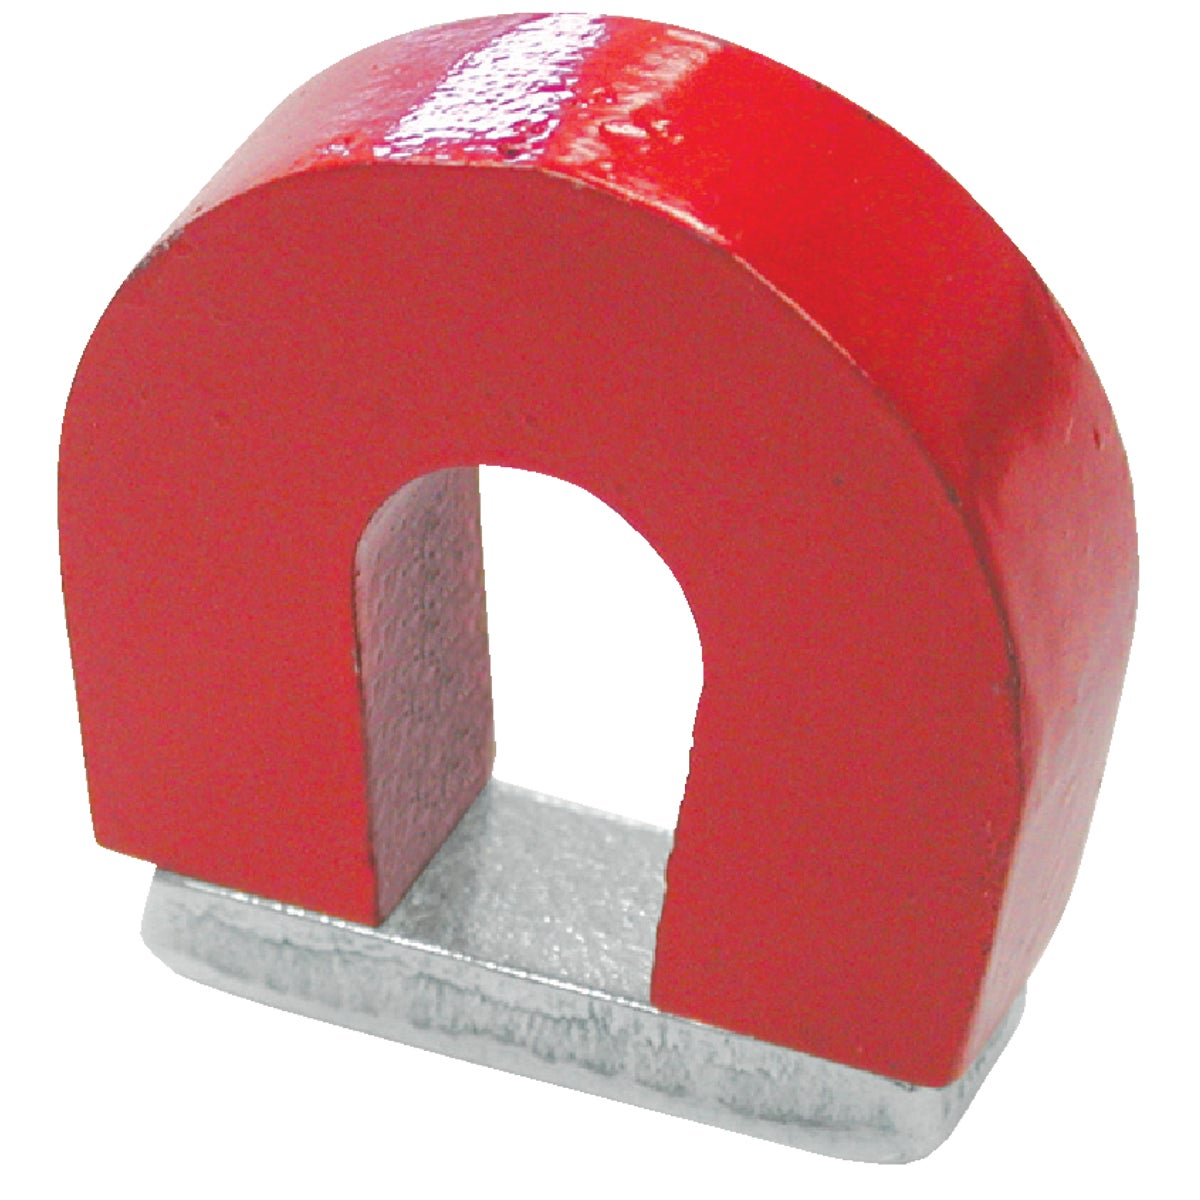 2LB HORSESHOE MAGNET - 07279 by Master Magnetics